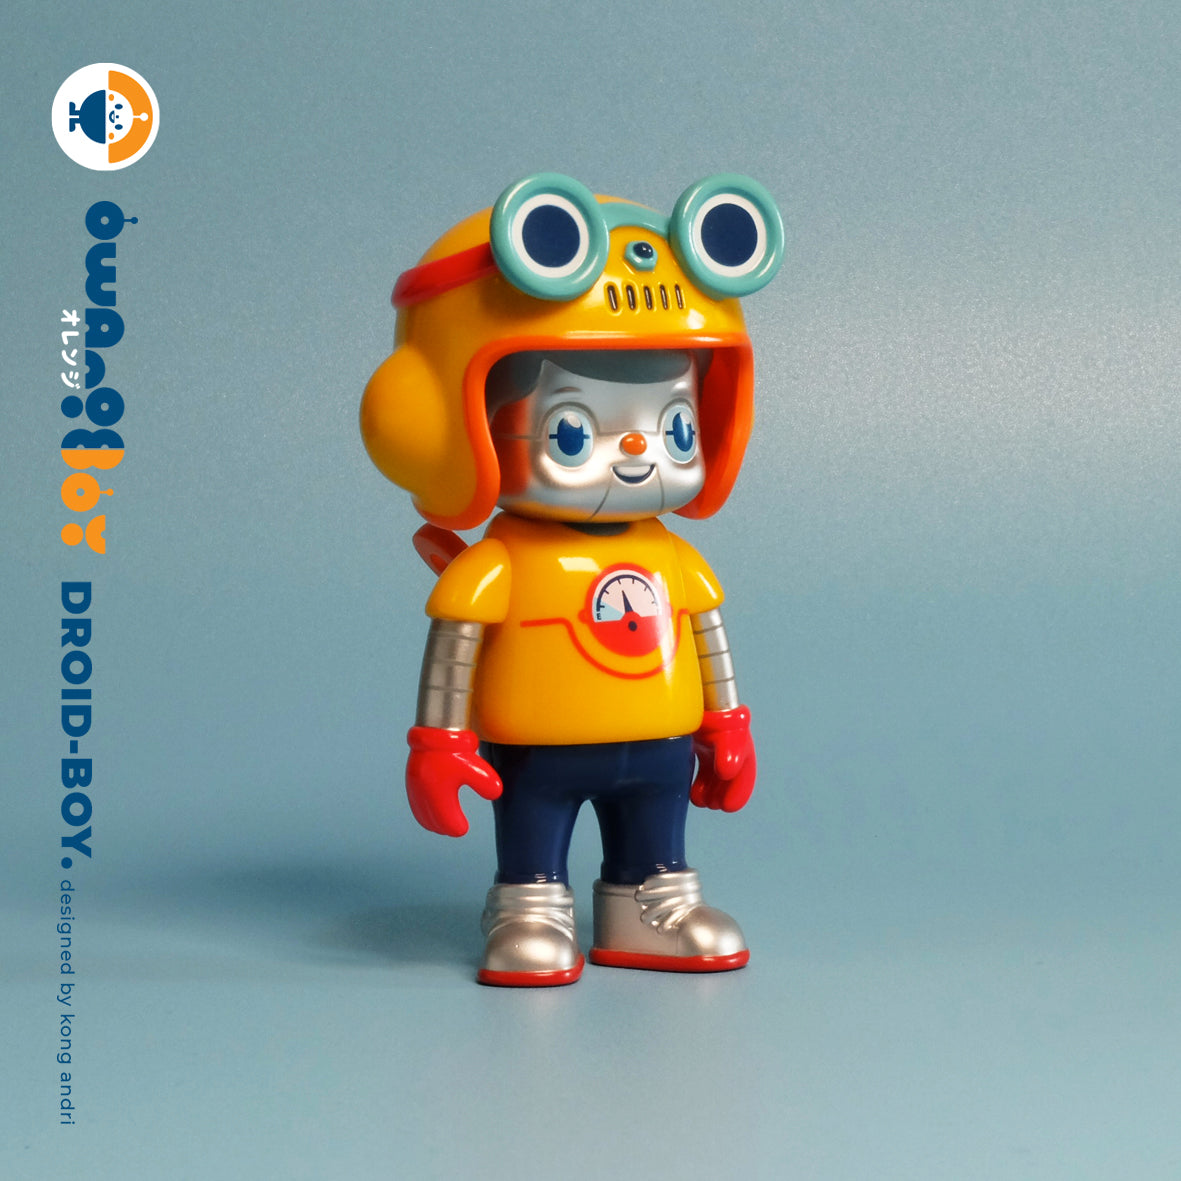 The Droid boy - Owangeboy by Kong Andri - Strangecat Exclusive